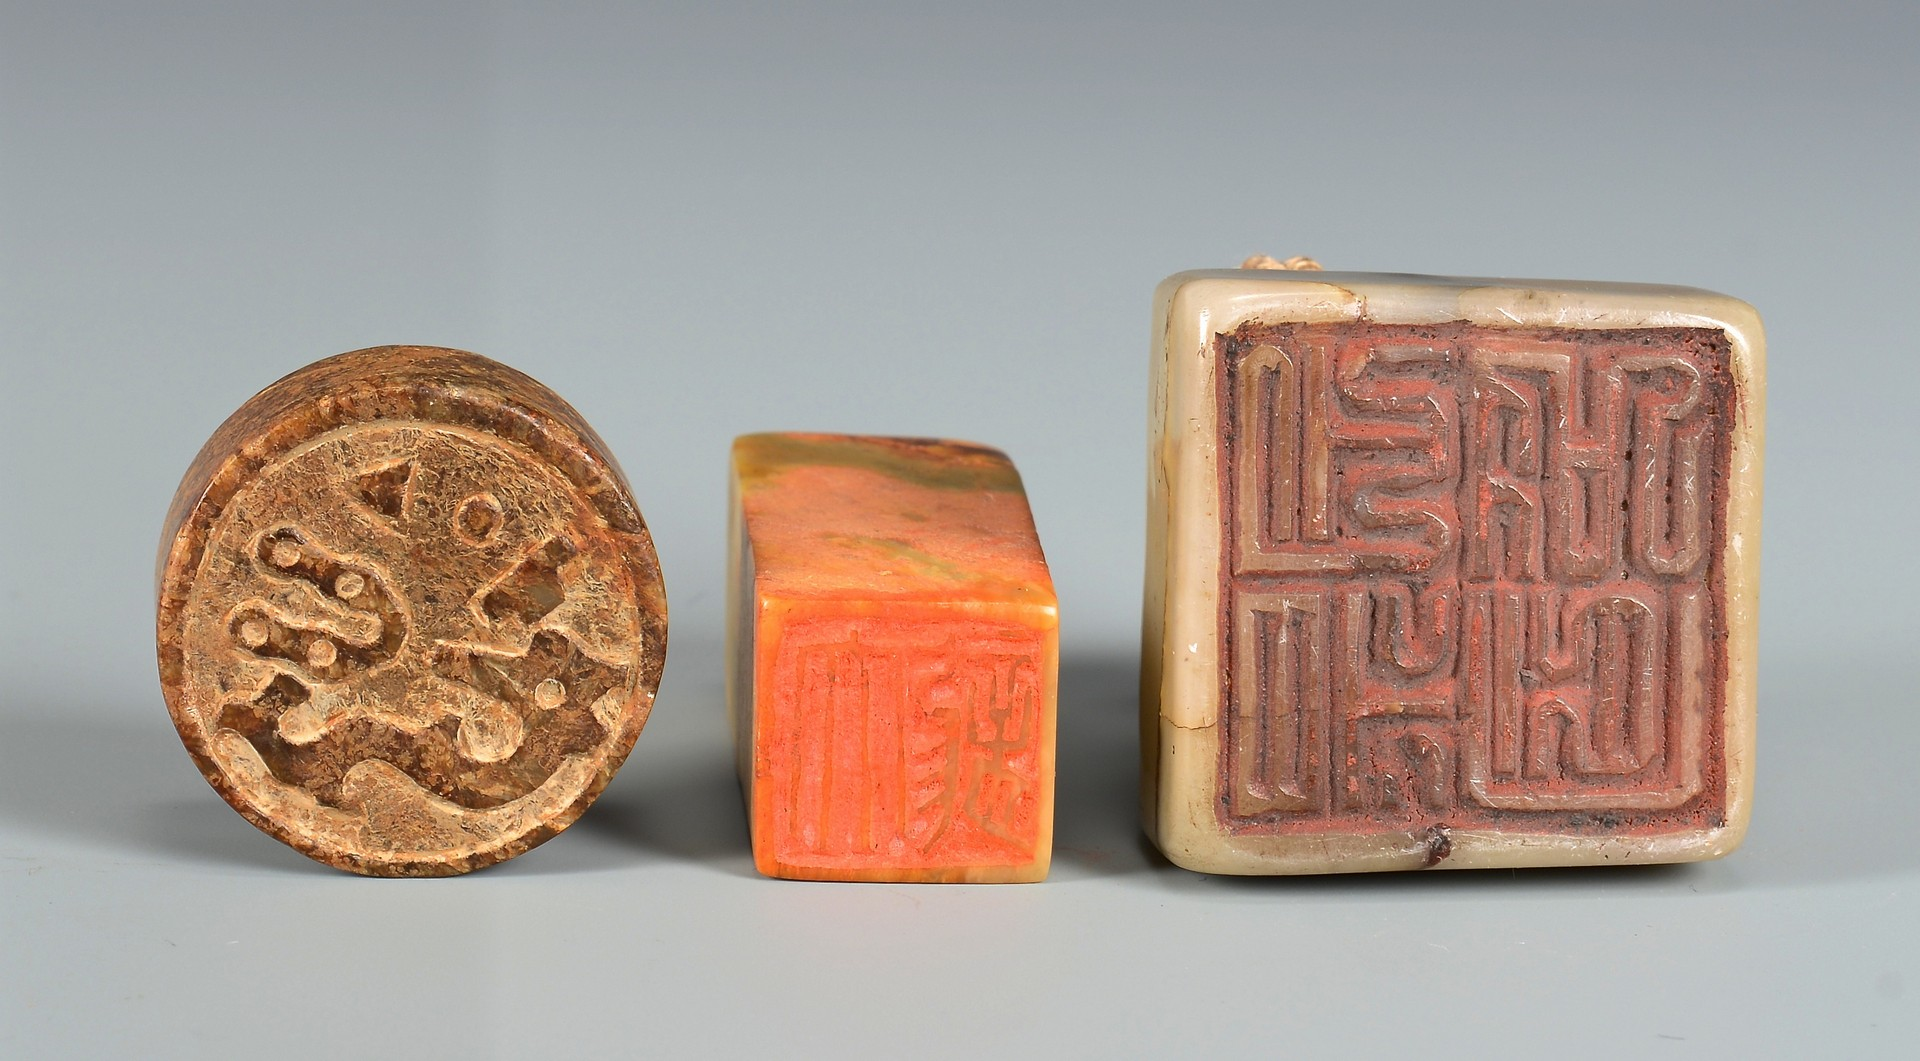 Lot 3832371: 3 Chinese Hardstone Seals